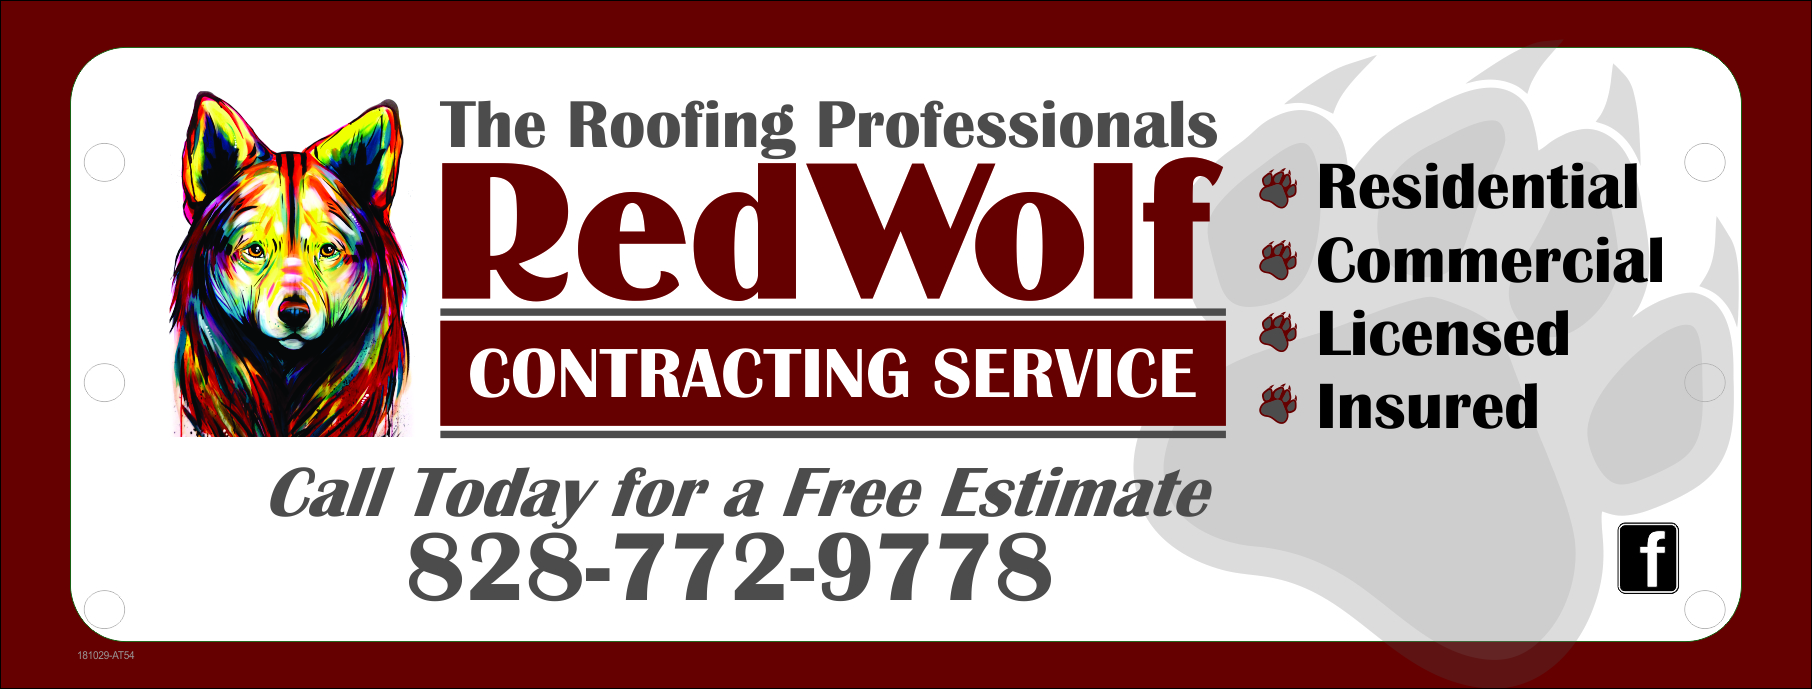 Call Matt at 828-772-9778 today for all of your roofing needs and tell him Hunter sent you!